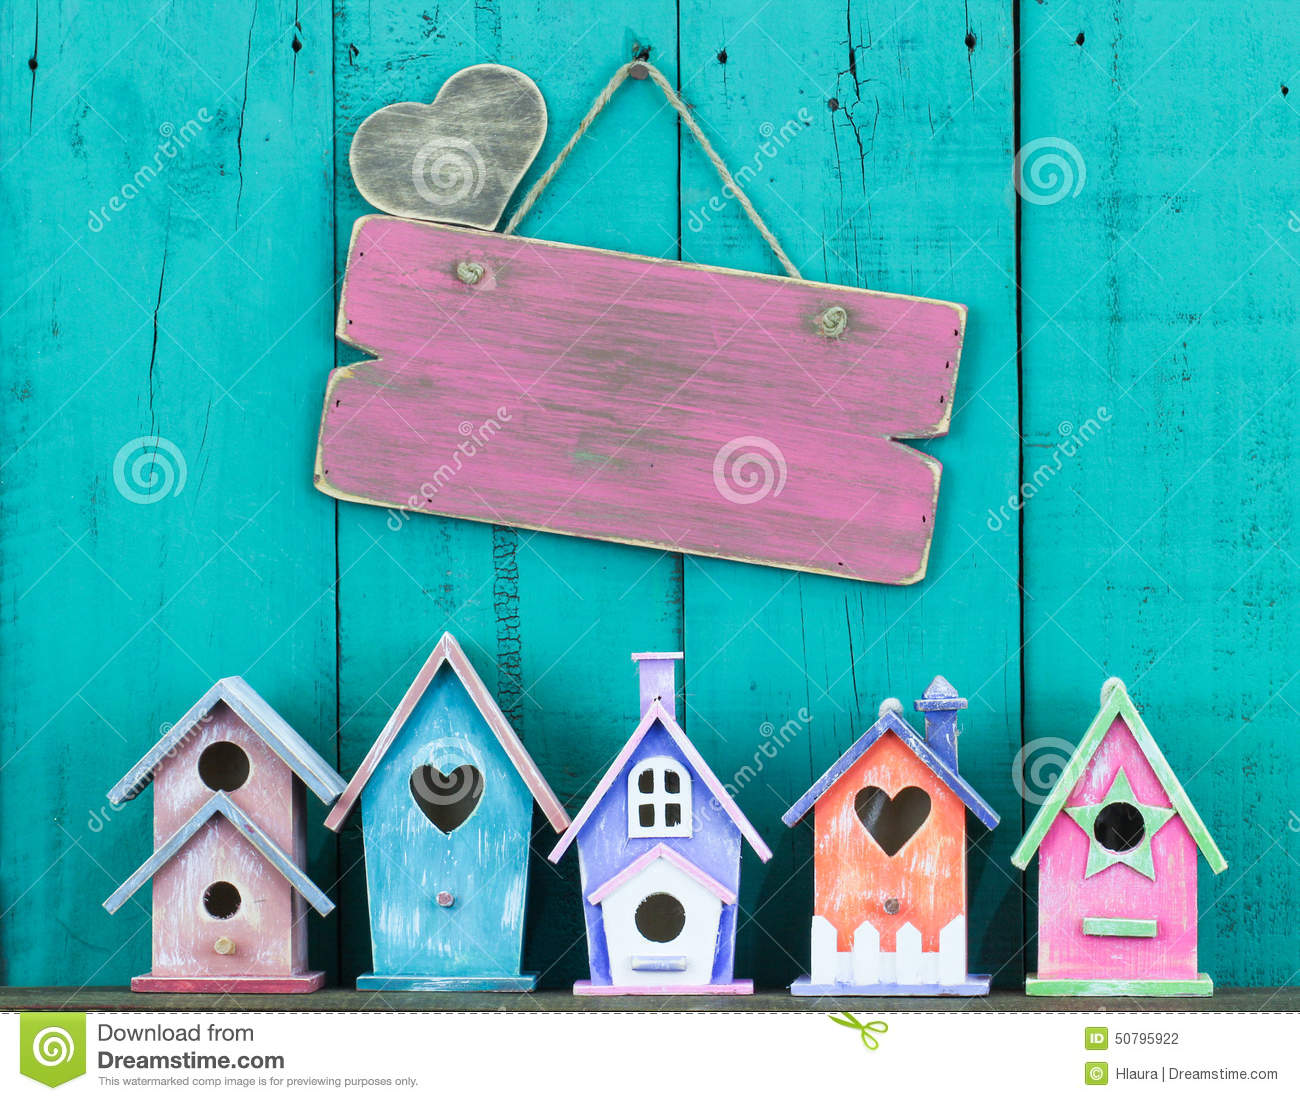 Blank sign with heart hanging by row of birdhouses